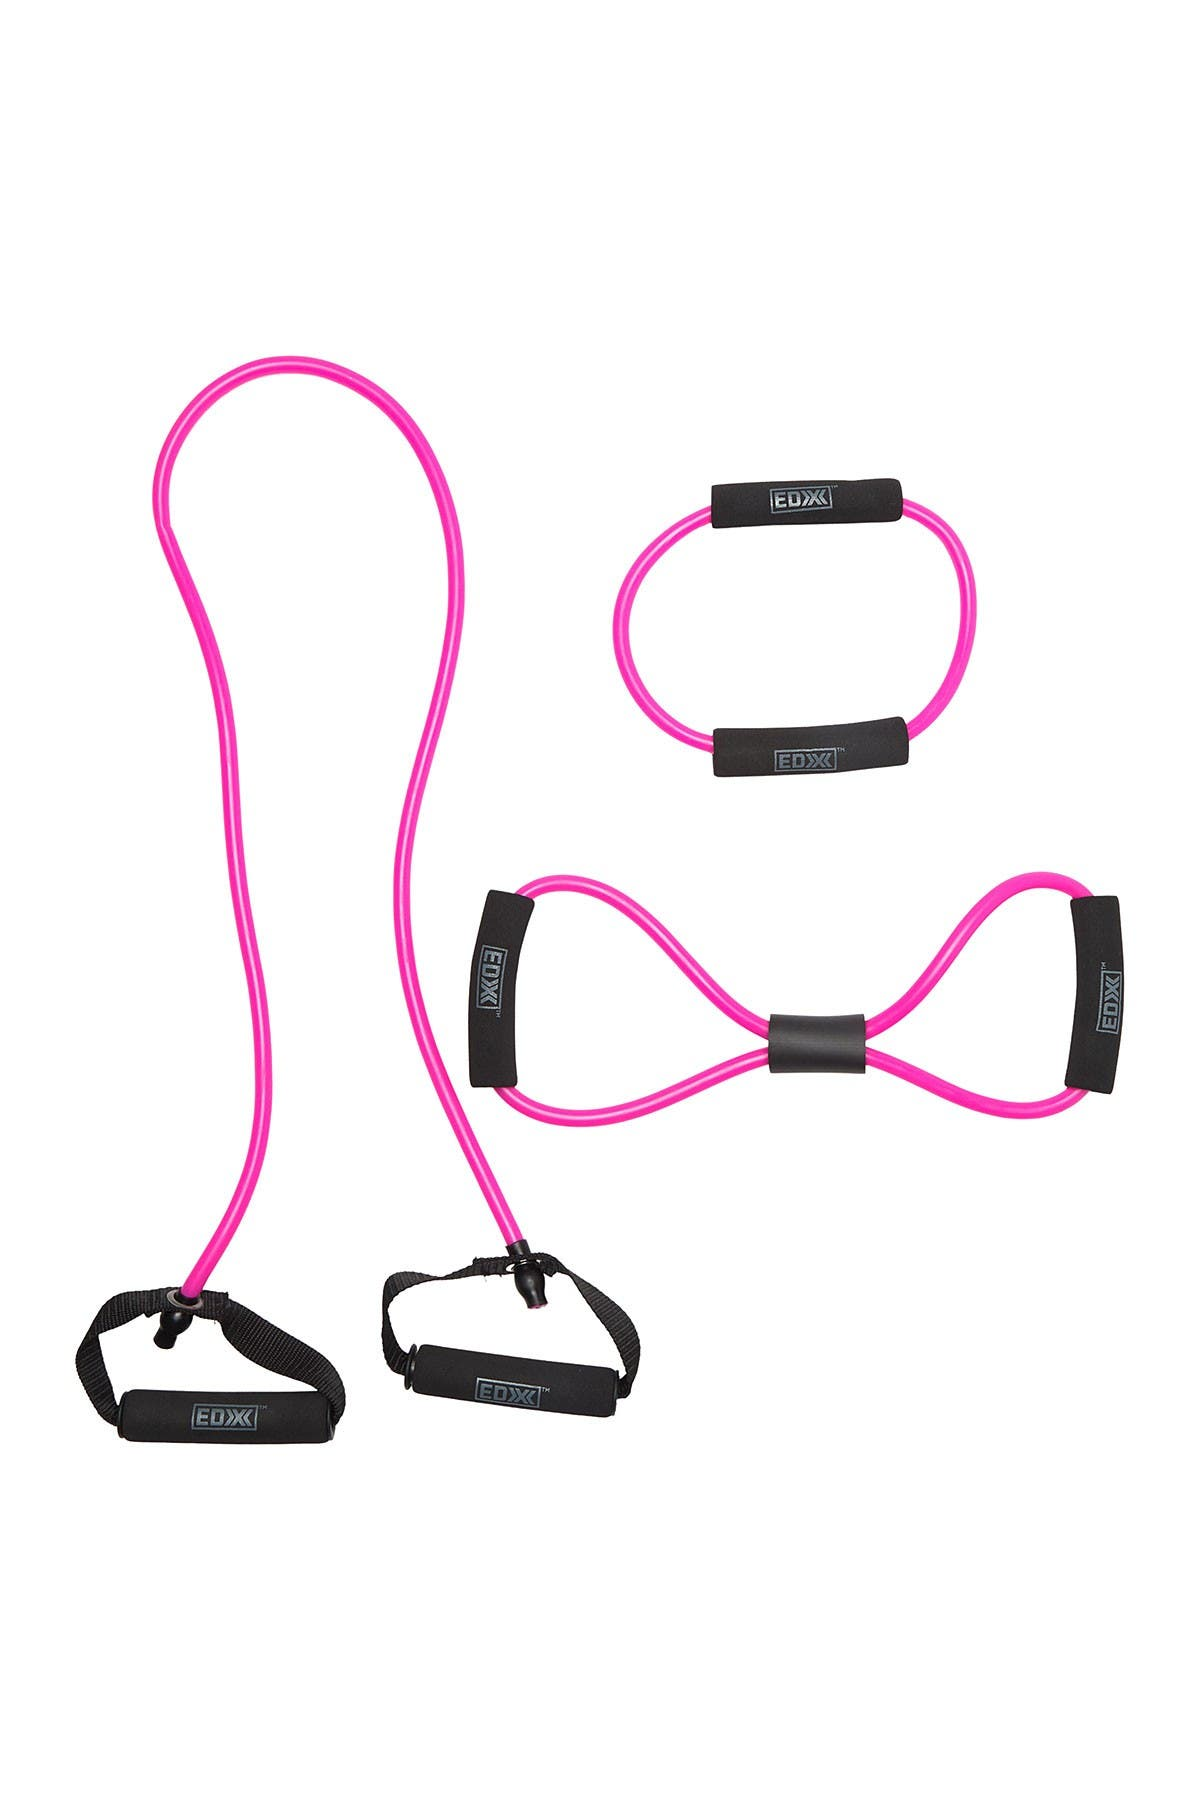 Image of OCI Pink EDX Resistance Toning Stretch Bands 3-Piece Set